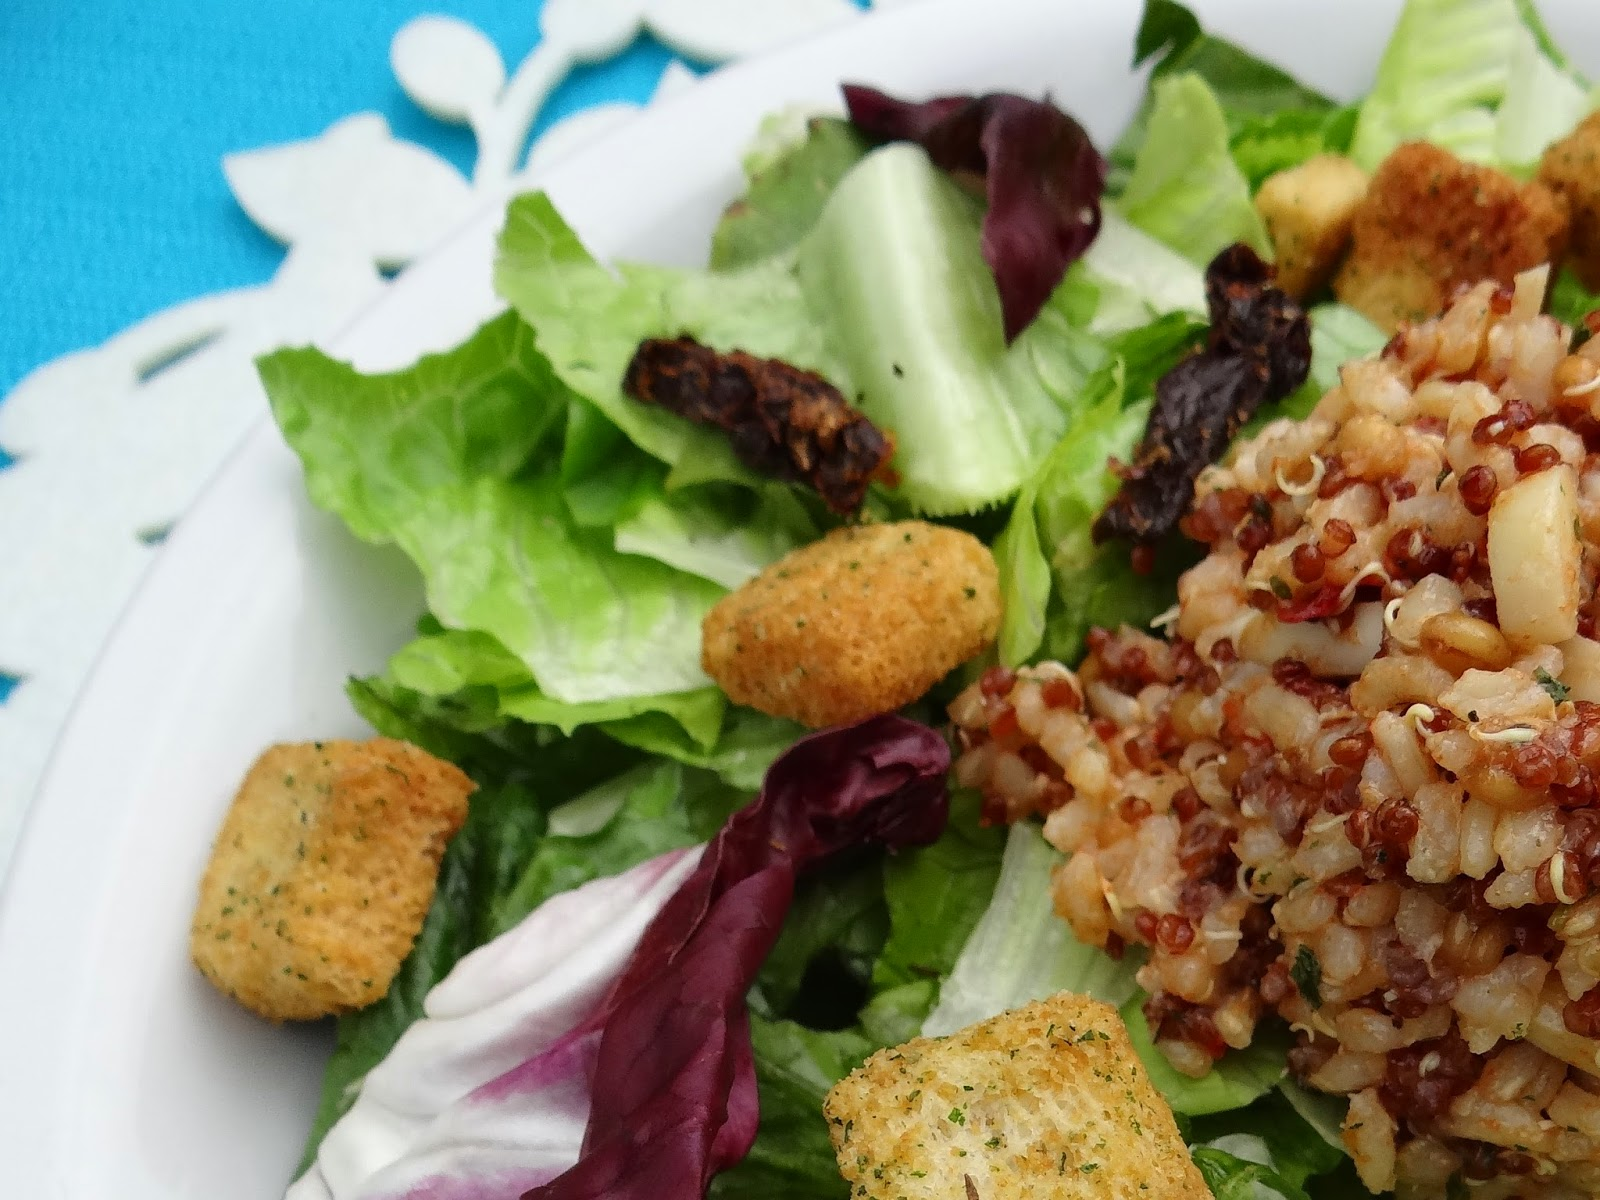 Spice Up Your #MeatlessMonday Dinner with Suddenly Grain Salad #SuddenlyGrainSalad #PlatefullCoOp #paid